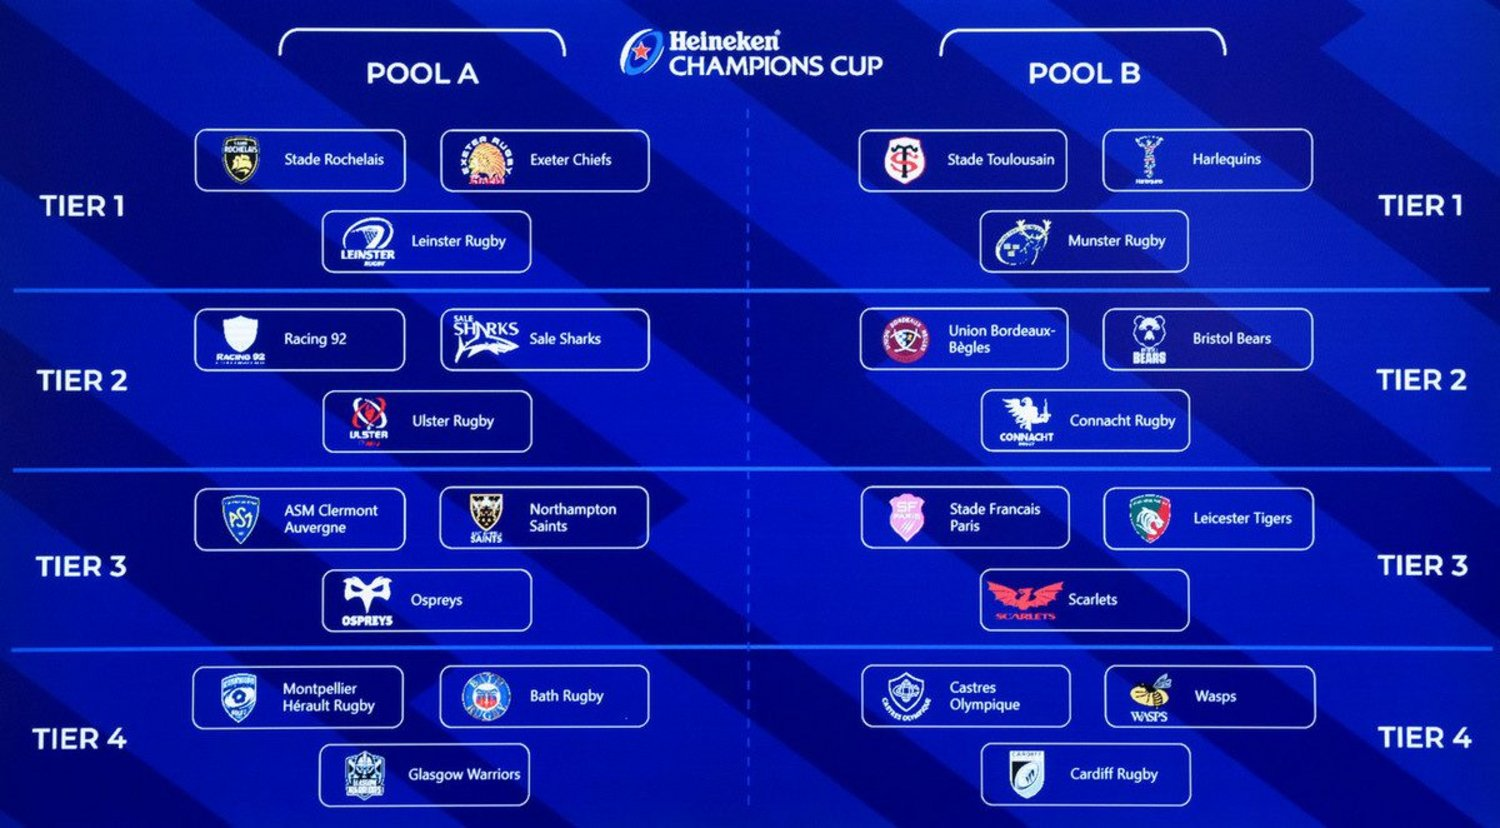 The full draw for the 2021/22 Heineken Champions Cup